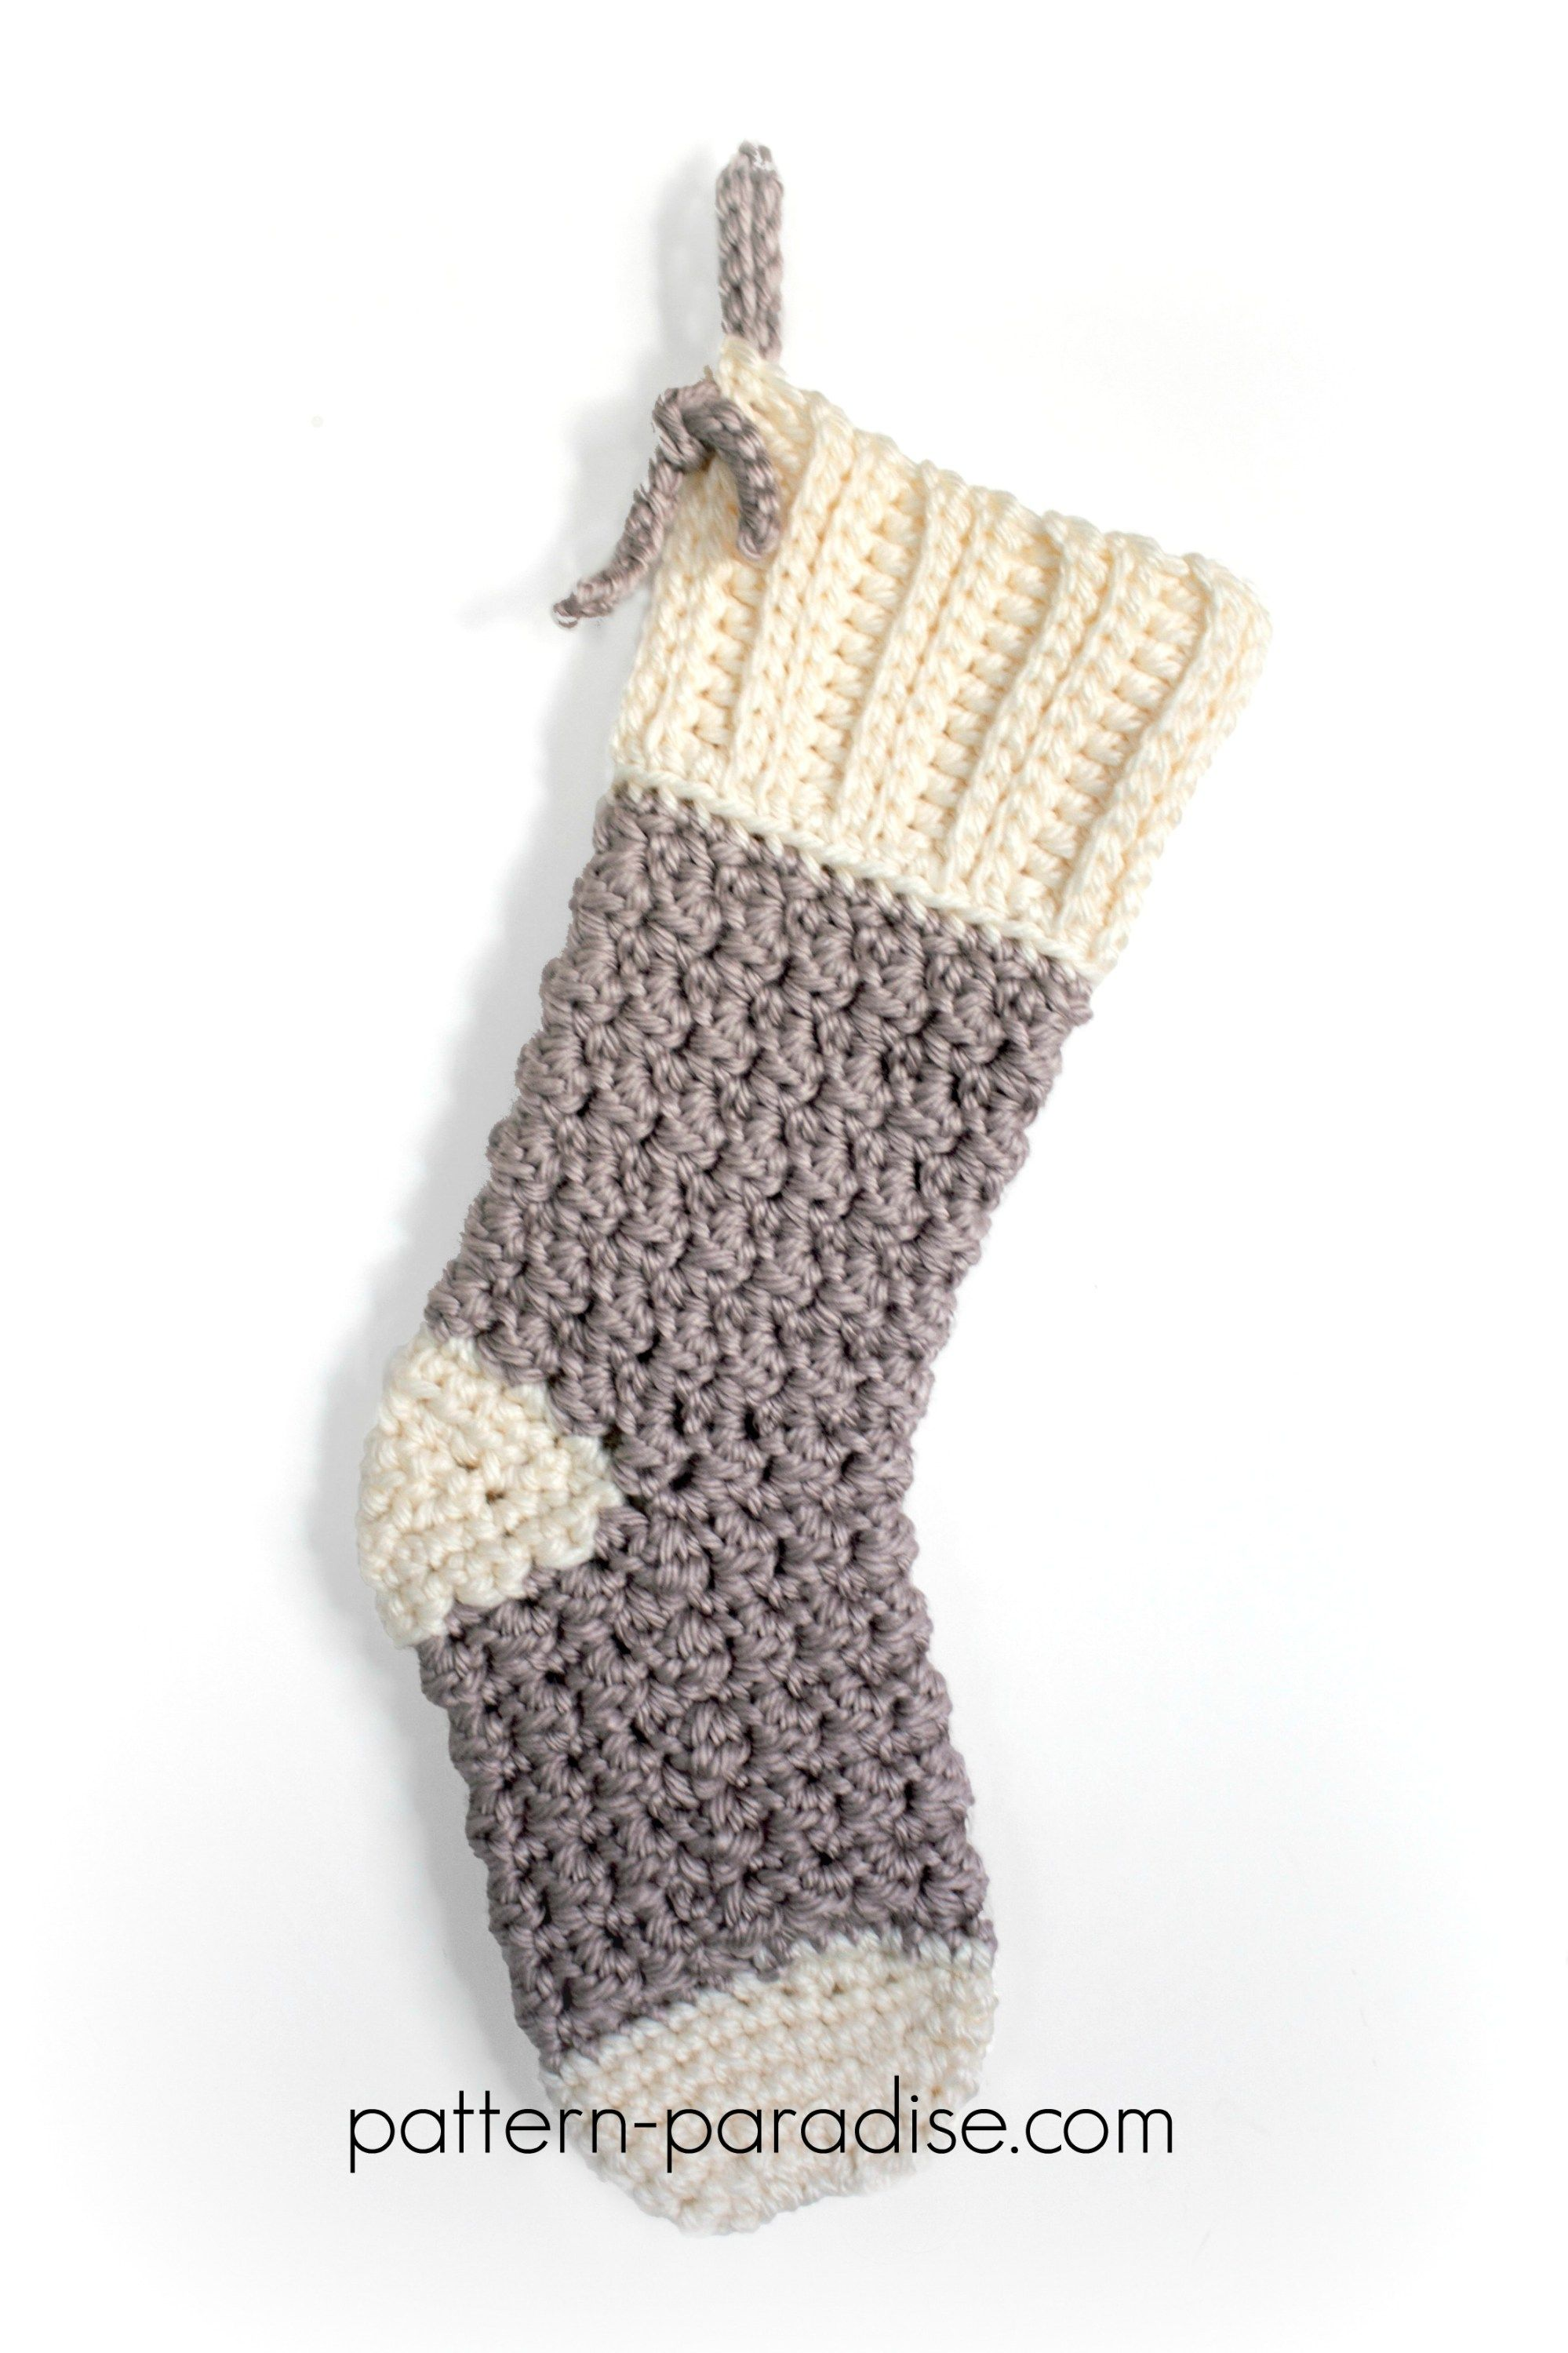 Free Crochet Pattern: Cozy Cottage Christmas Stocking | Tejido y Navidad